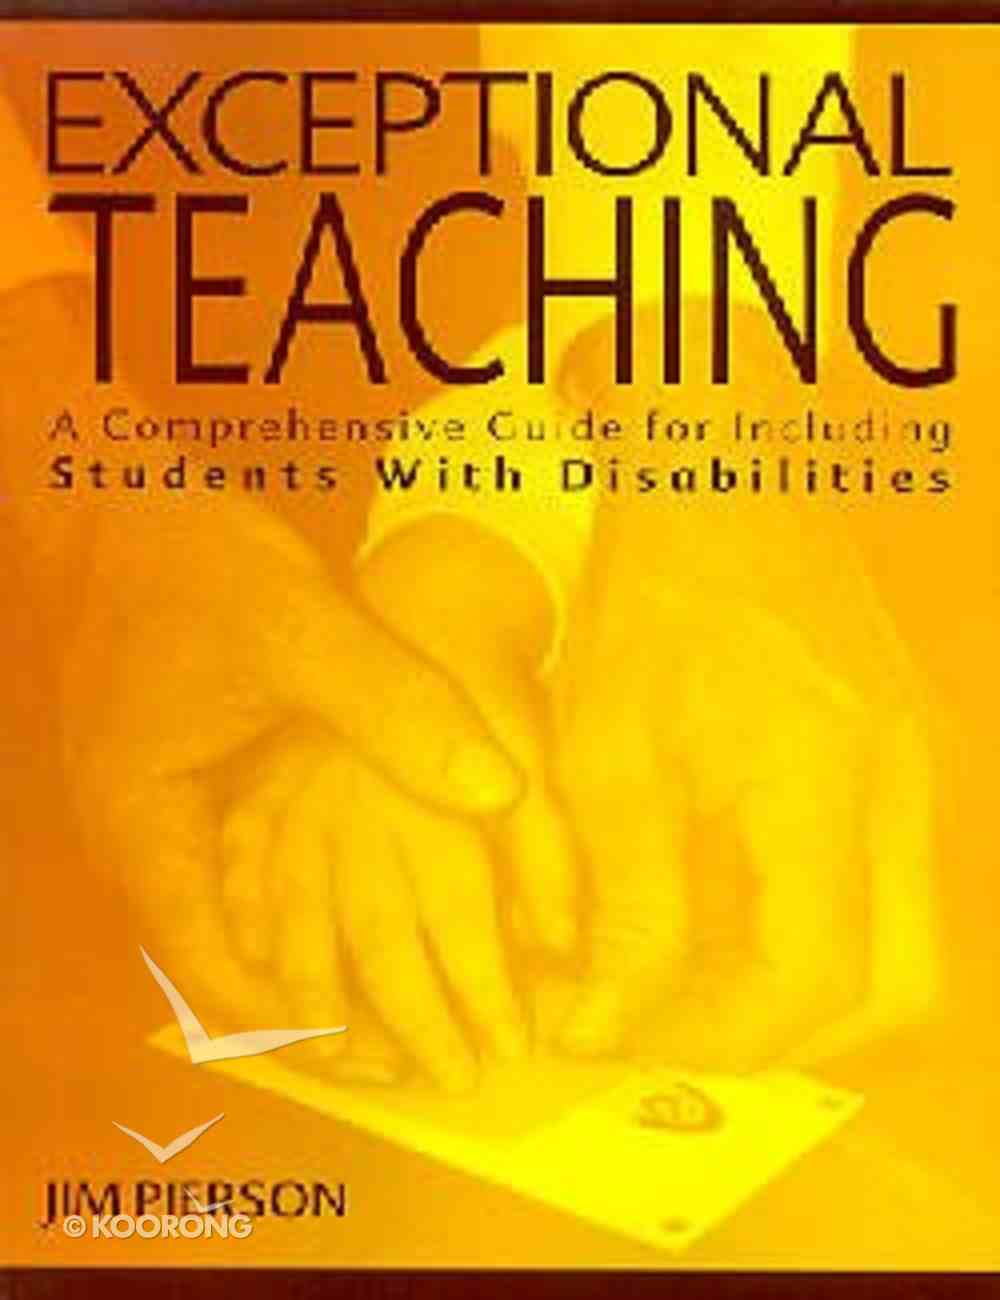 Exceptional Teaching Paperback